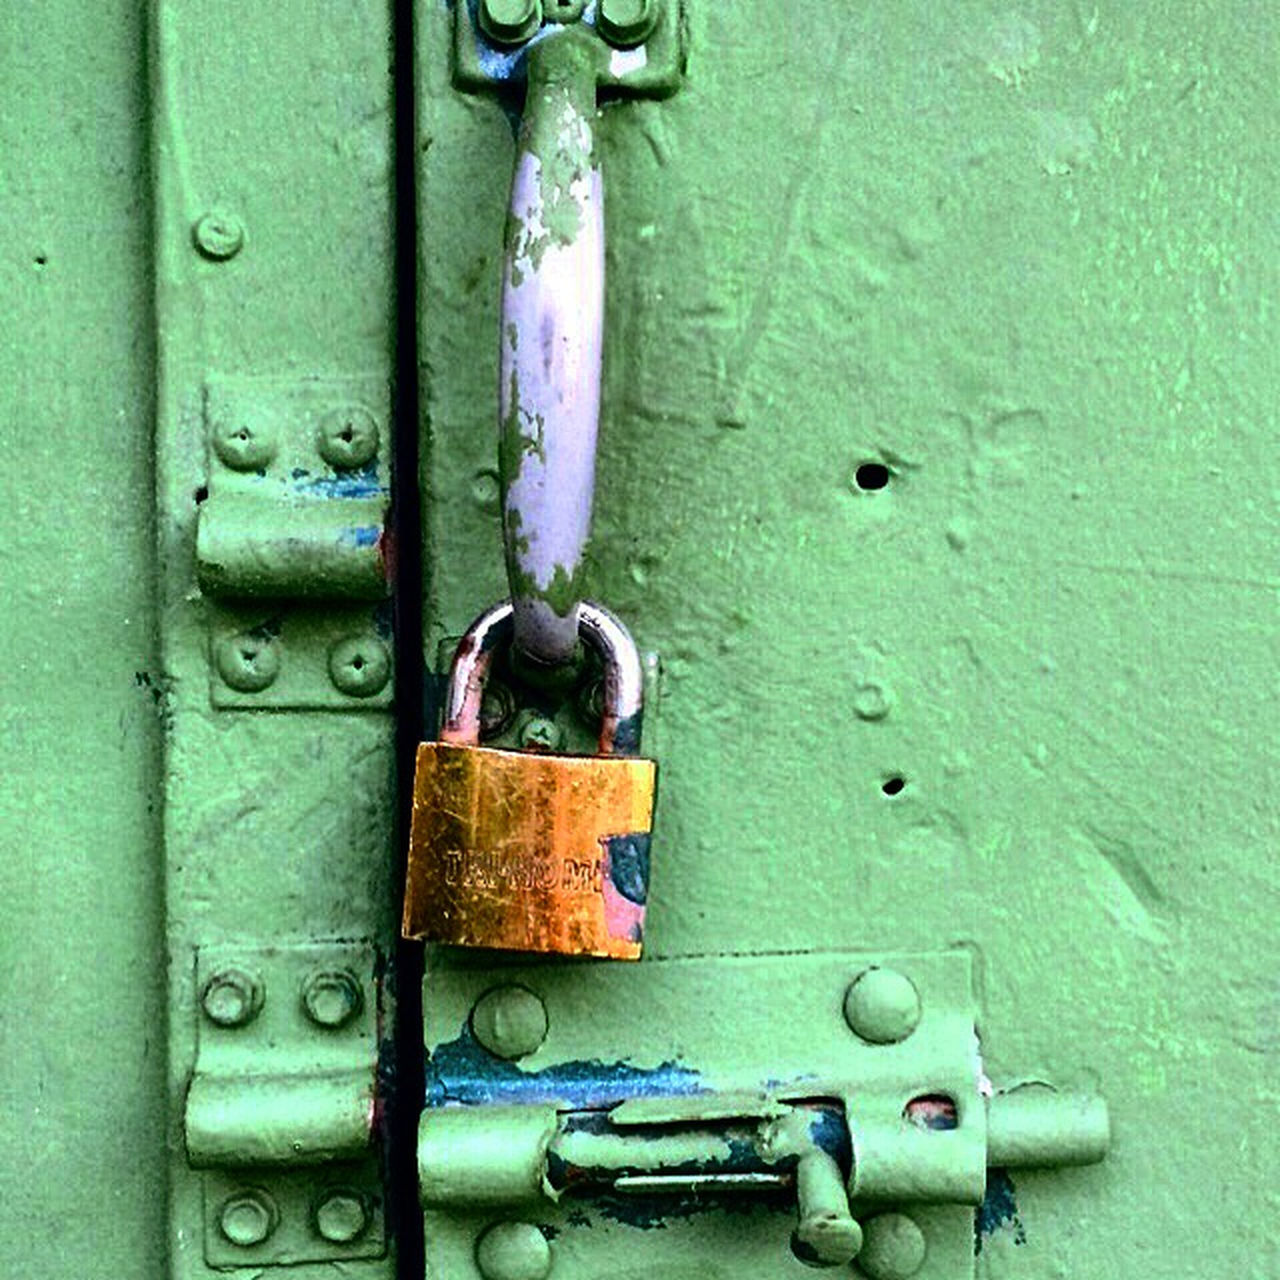 metal, padlock, security, door, lock, protection, safety, closed, close-up, outdoors, no people, day, chain, green color, rusty, latch, love lock